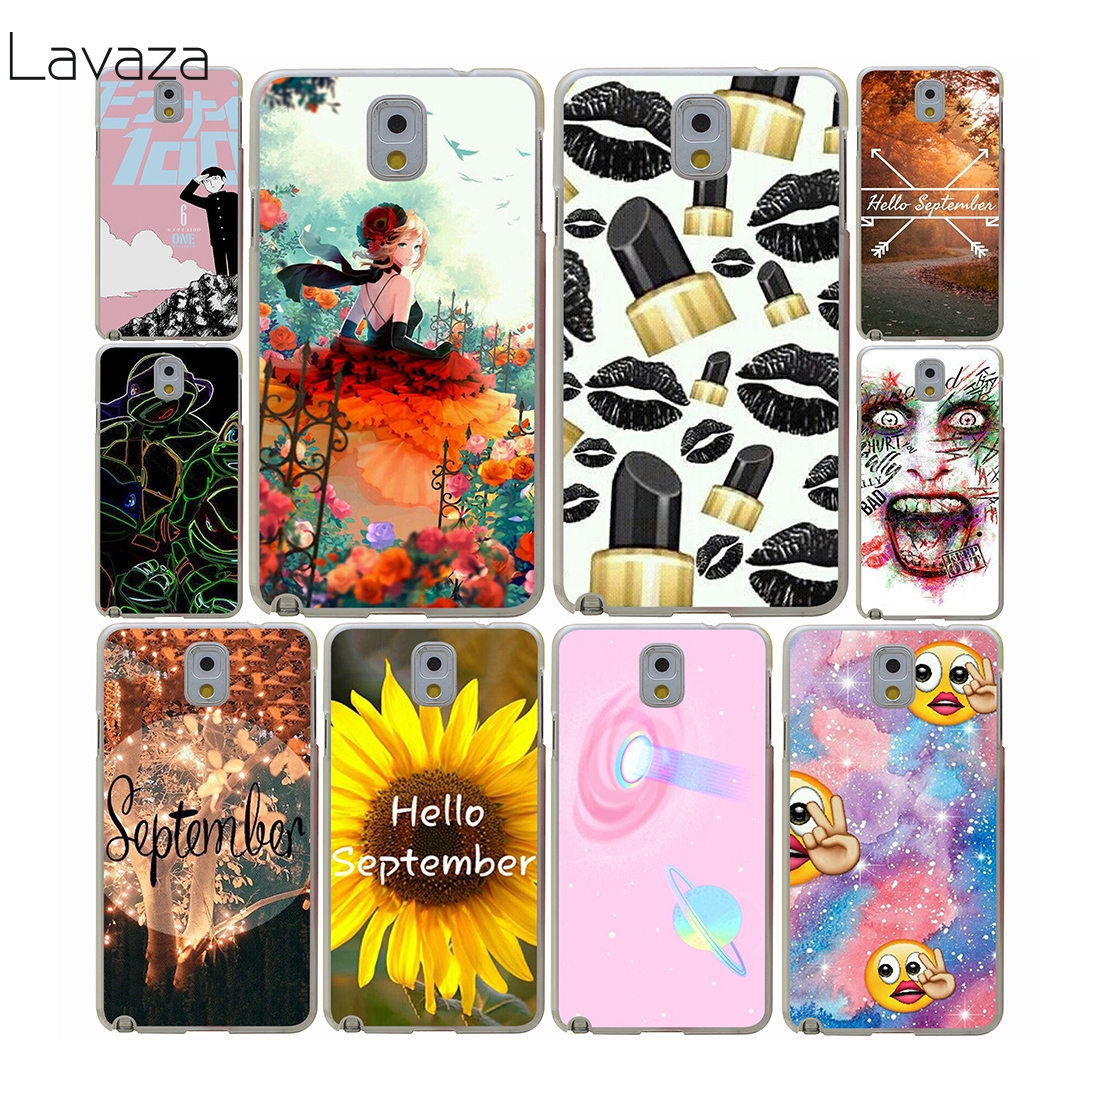 Lavaza anime sanat Hard Case samsung Galaxy A3 A5 A7 A8 Artı 2018 2017 2015 Grand 2 Başbakan Not 8